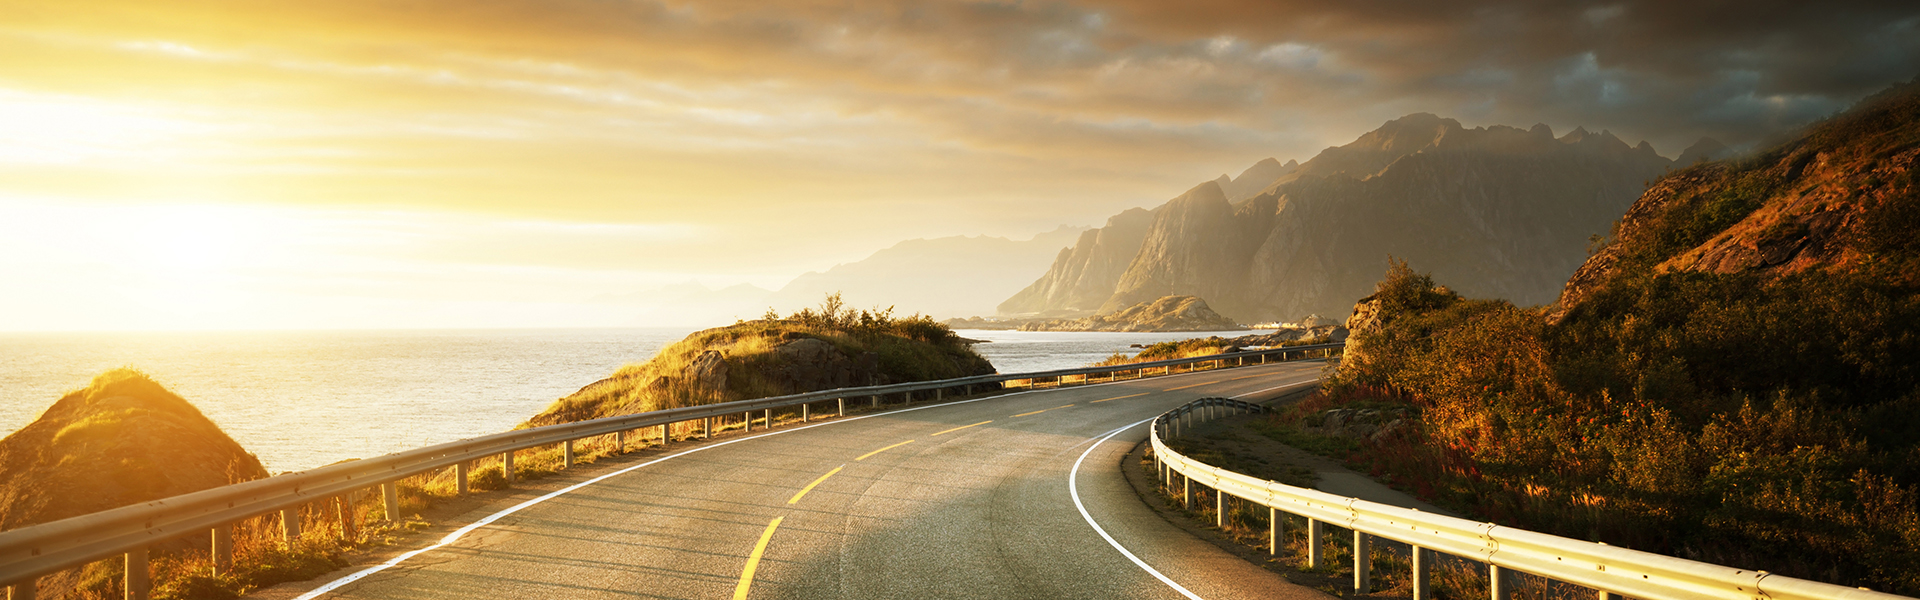 road by the sea in sunrise time